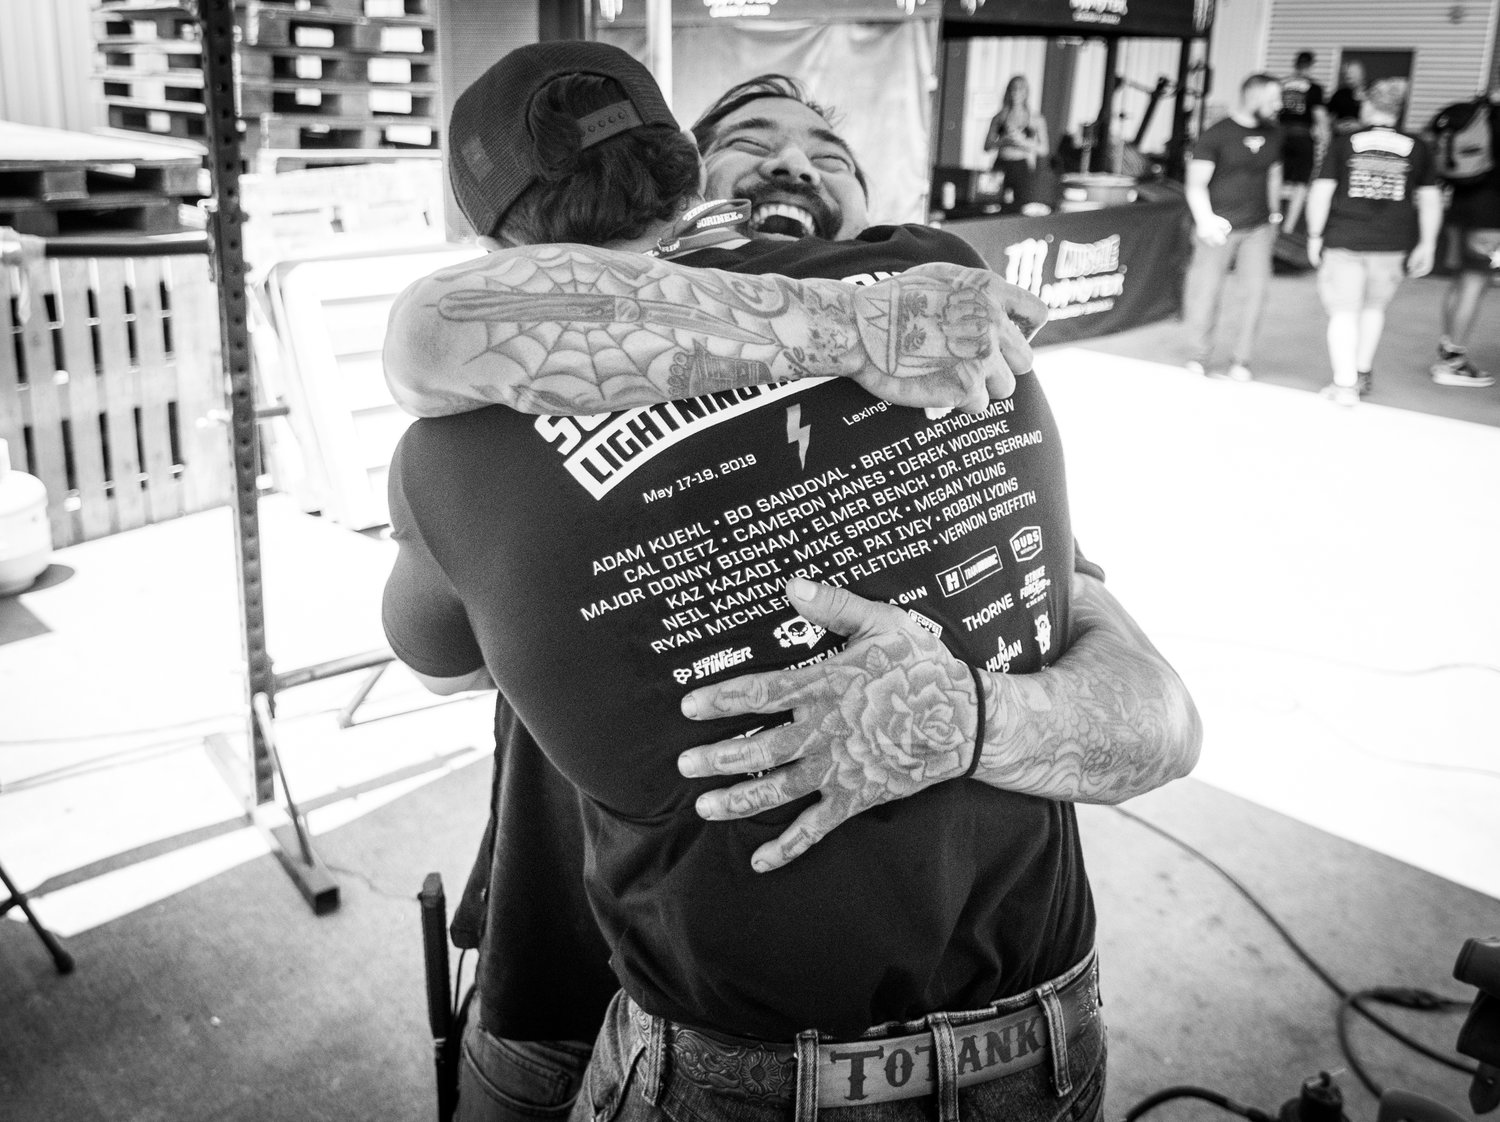 Brady and Neil (IG: @rpm_neil) hug after Kamimura's heart-felt discourse on struggling on his path to finding his passion.